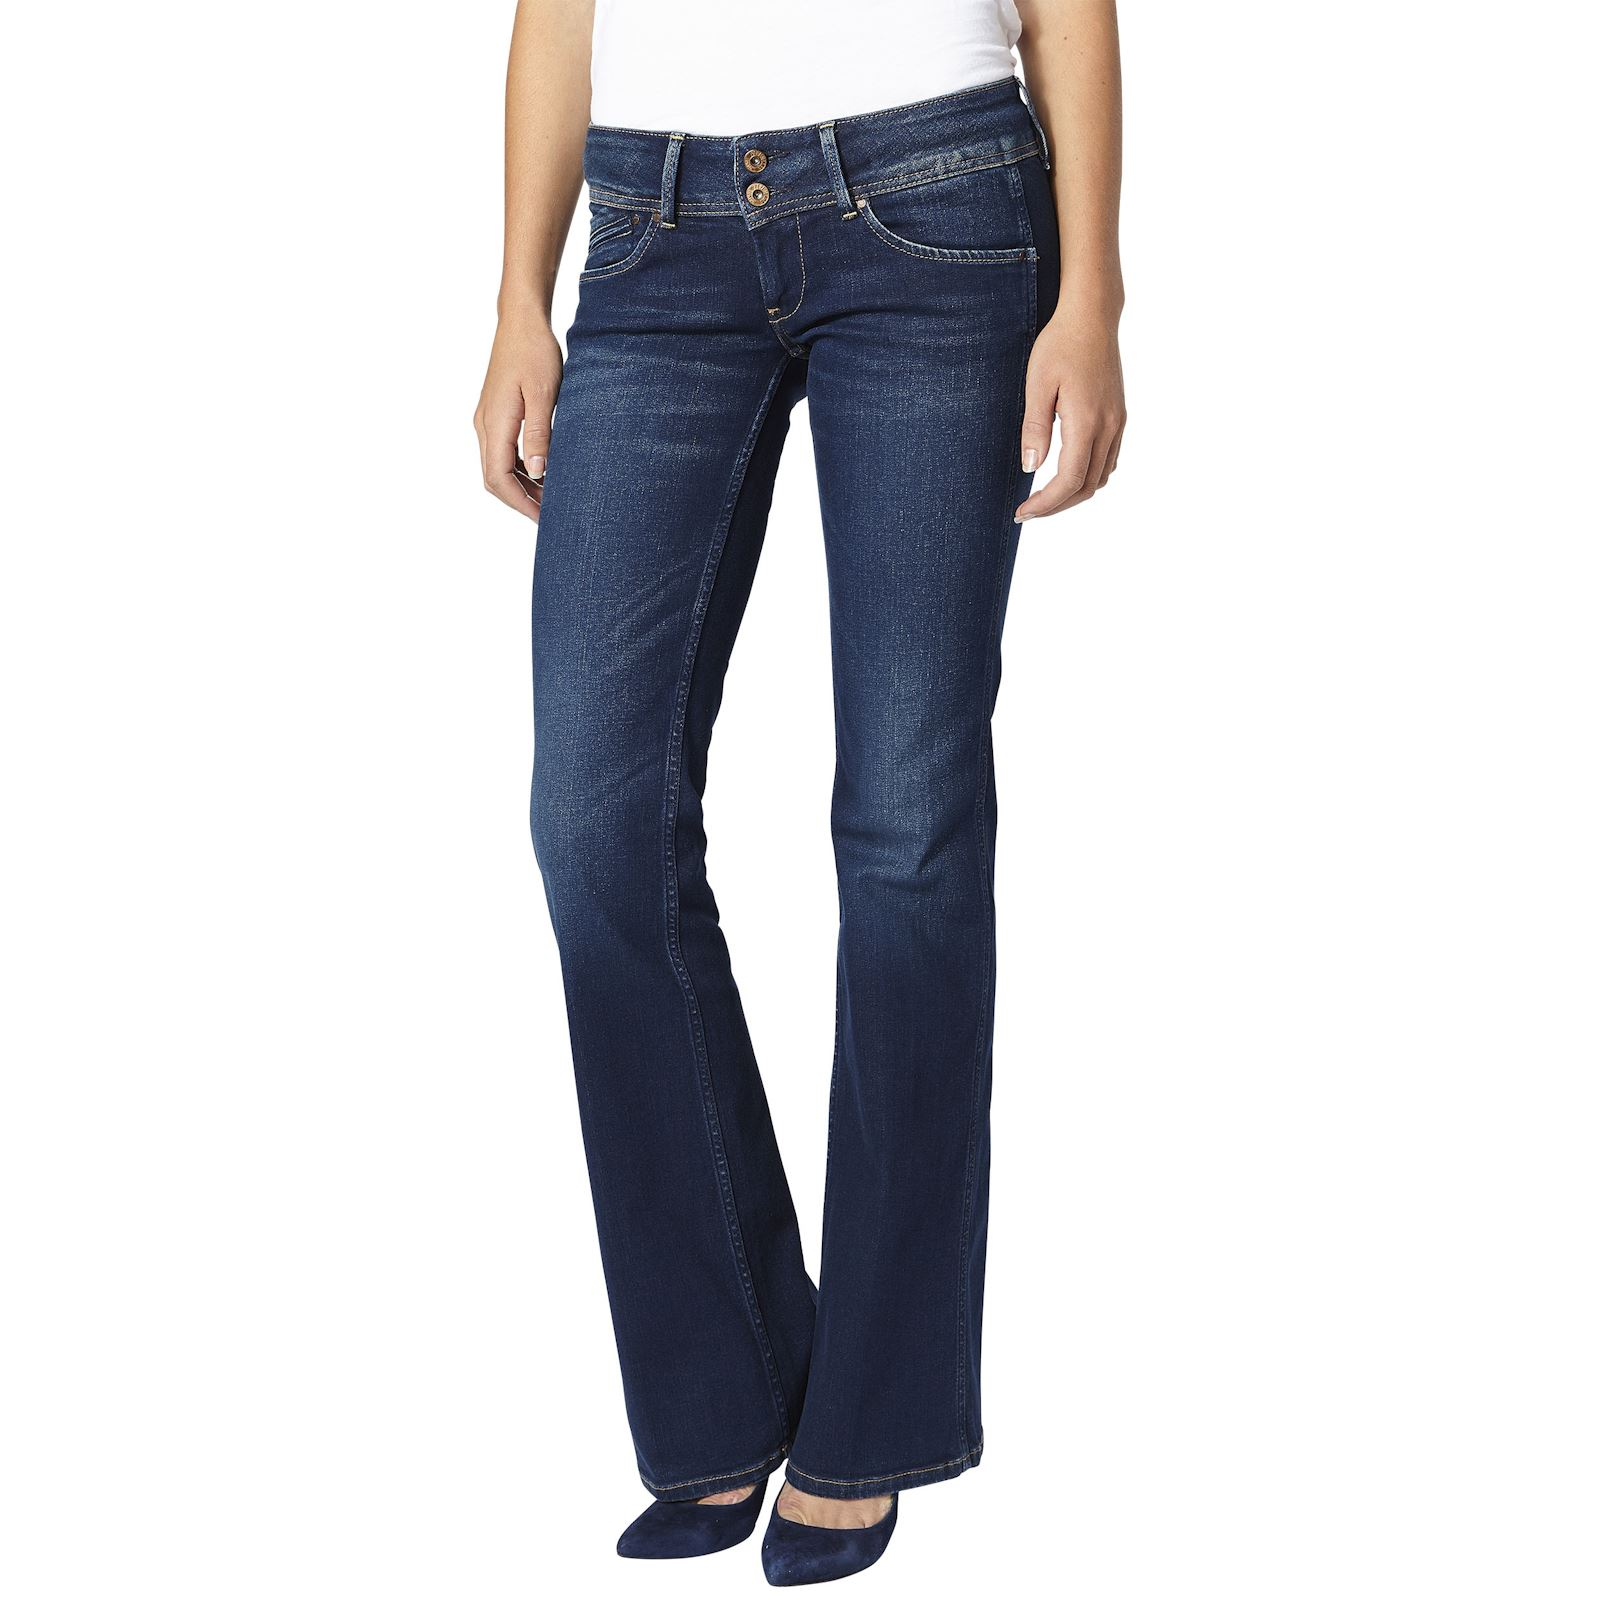 Pepe Jeans London Pimlico - Jean flare - denim bleu